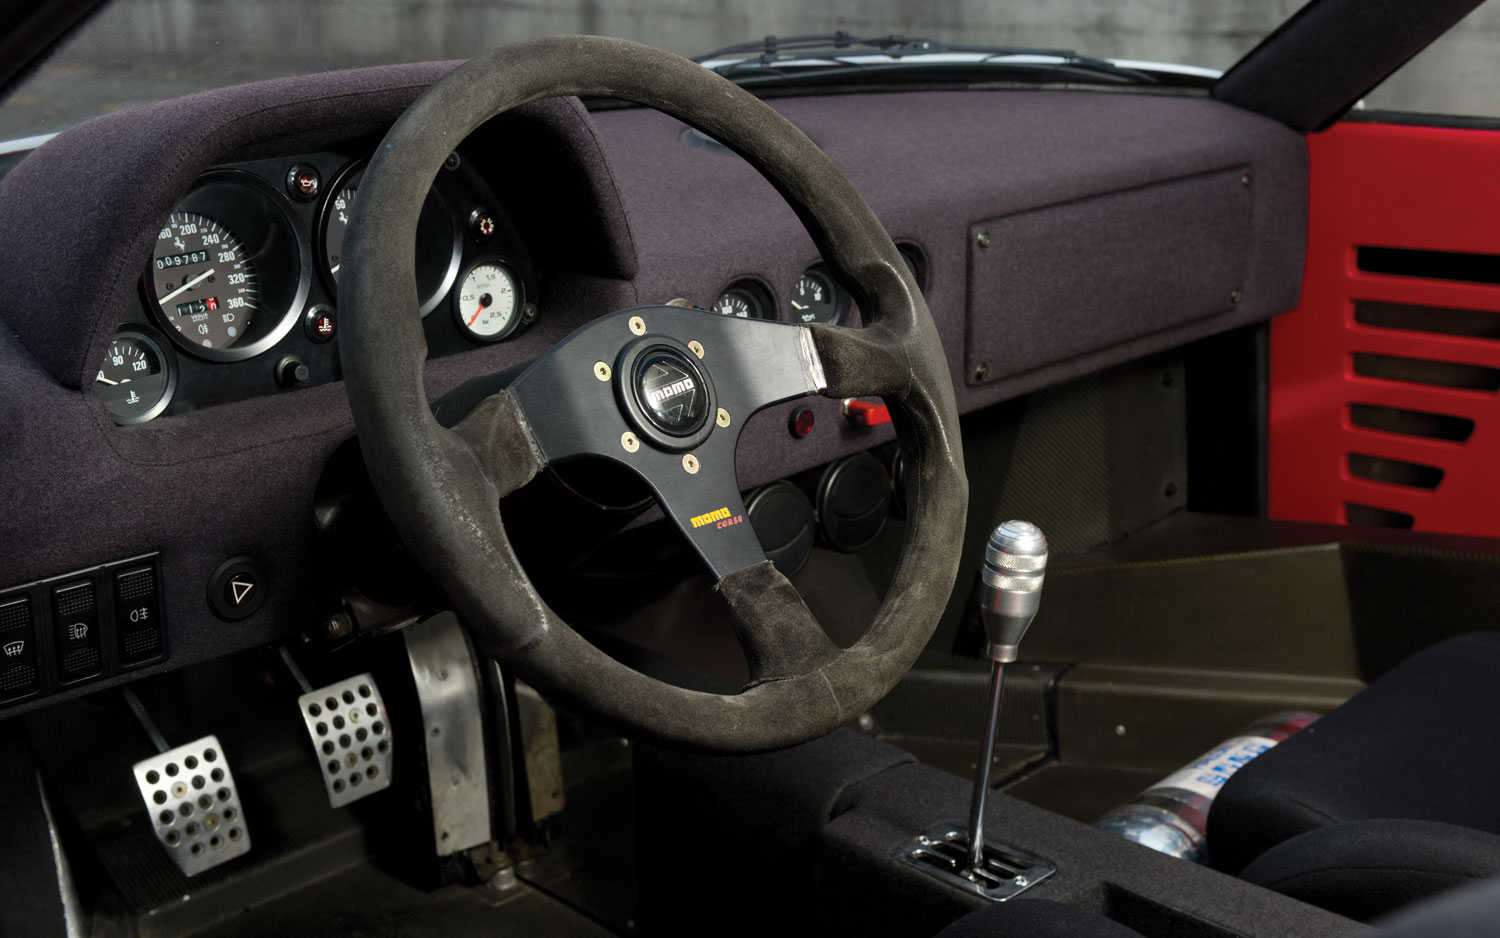 Ferrari f40 interior images hd cars wallpaper vintage ferrari 166 inter 206 s 625 trc heading to rm auctions 1987 ferrari f40 prototype vanachro Image collections